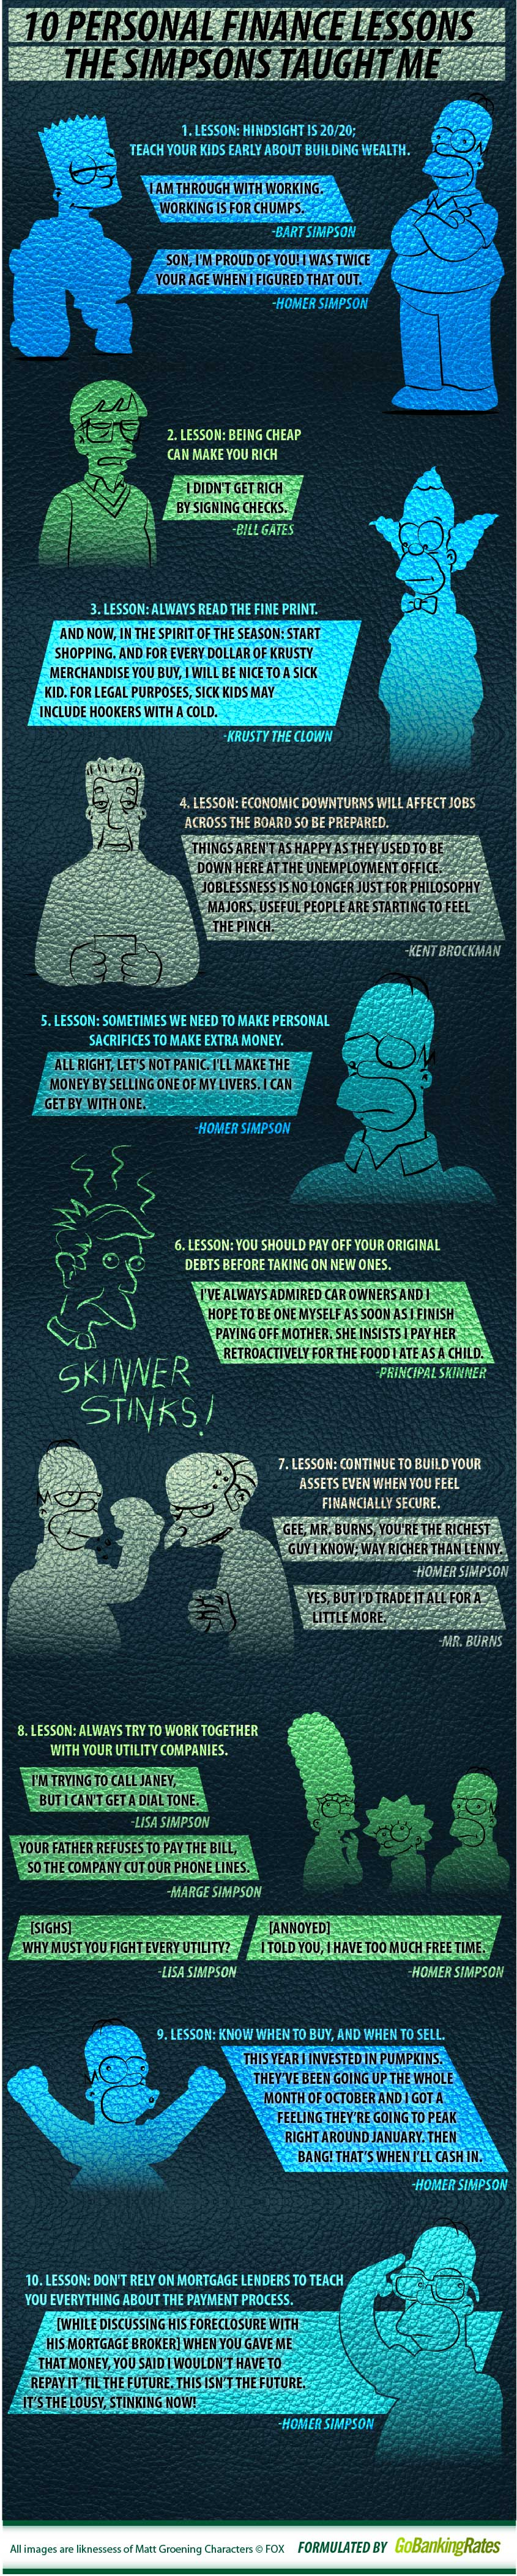 10-personal-finance-tips-from-the-simpsons_50290af564329